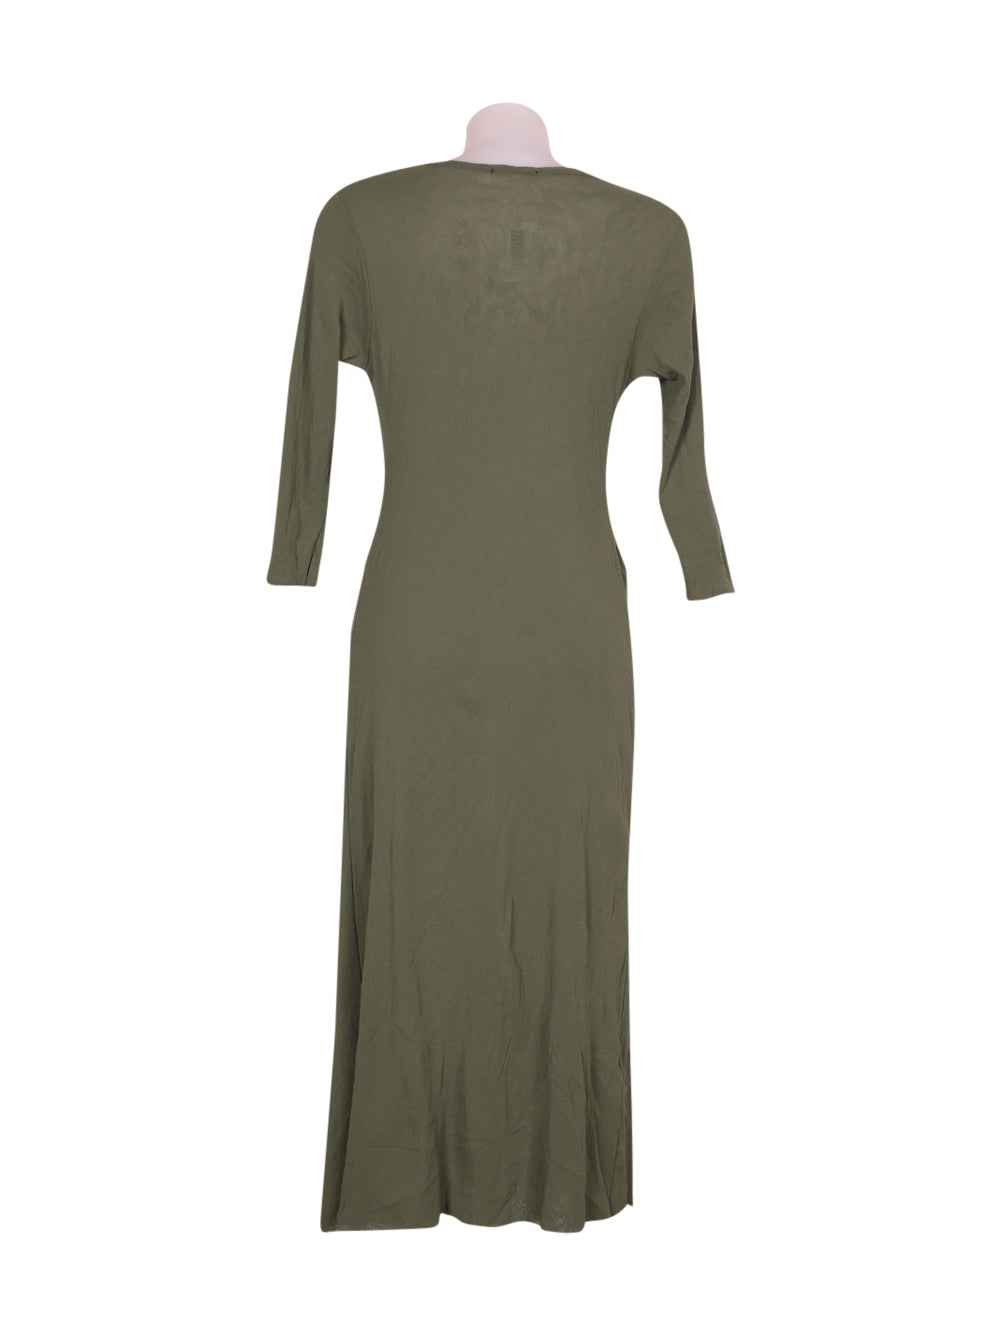 Back photo of Preloved XXLA FEMME Green Woman's dress - size 12/L